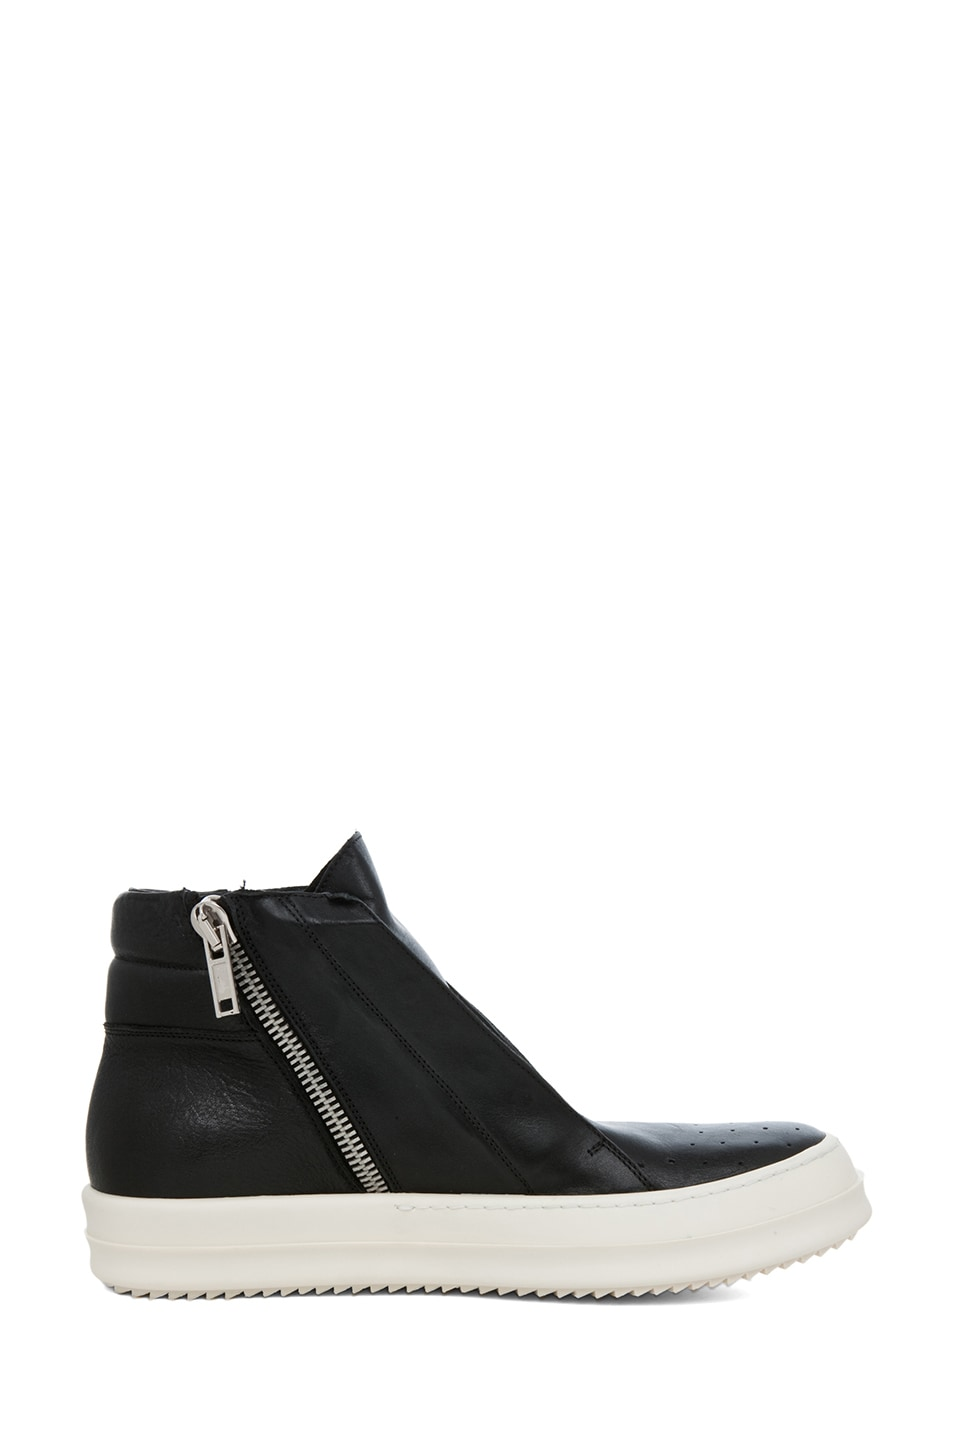 Island Dunk sneakers - Black Rick Owens QeJGSNW